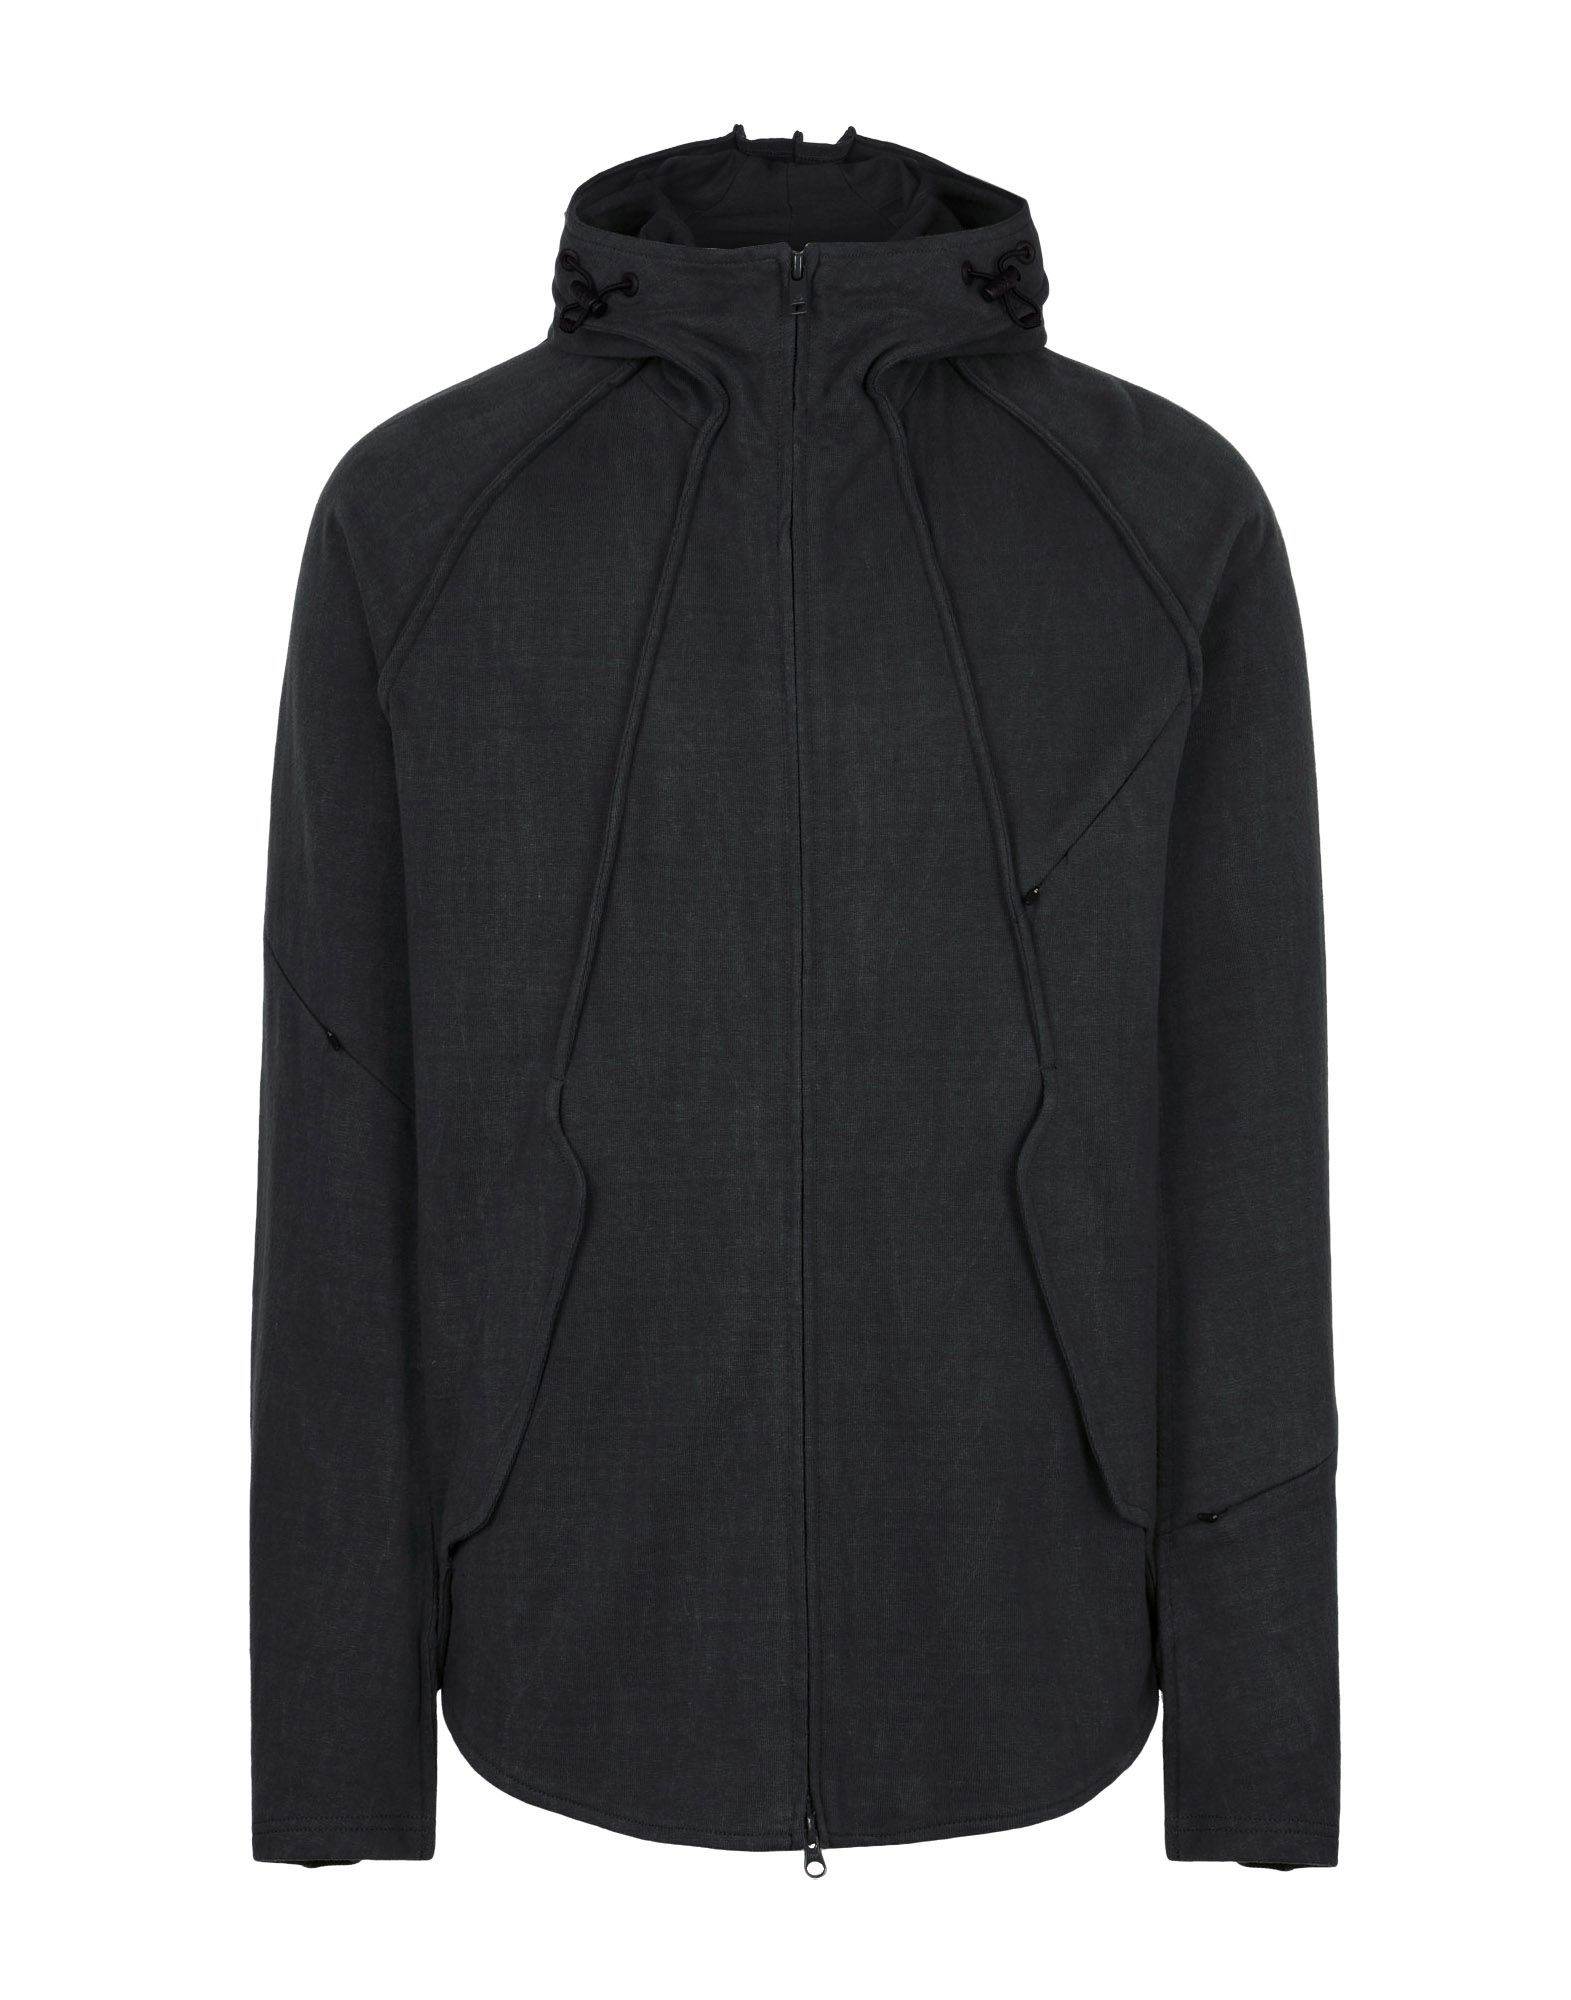 Y 3 VINTAGE HOODED JACKET Jackets for Men | Adidas Y-3 Official Store